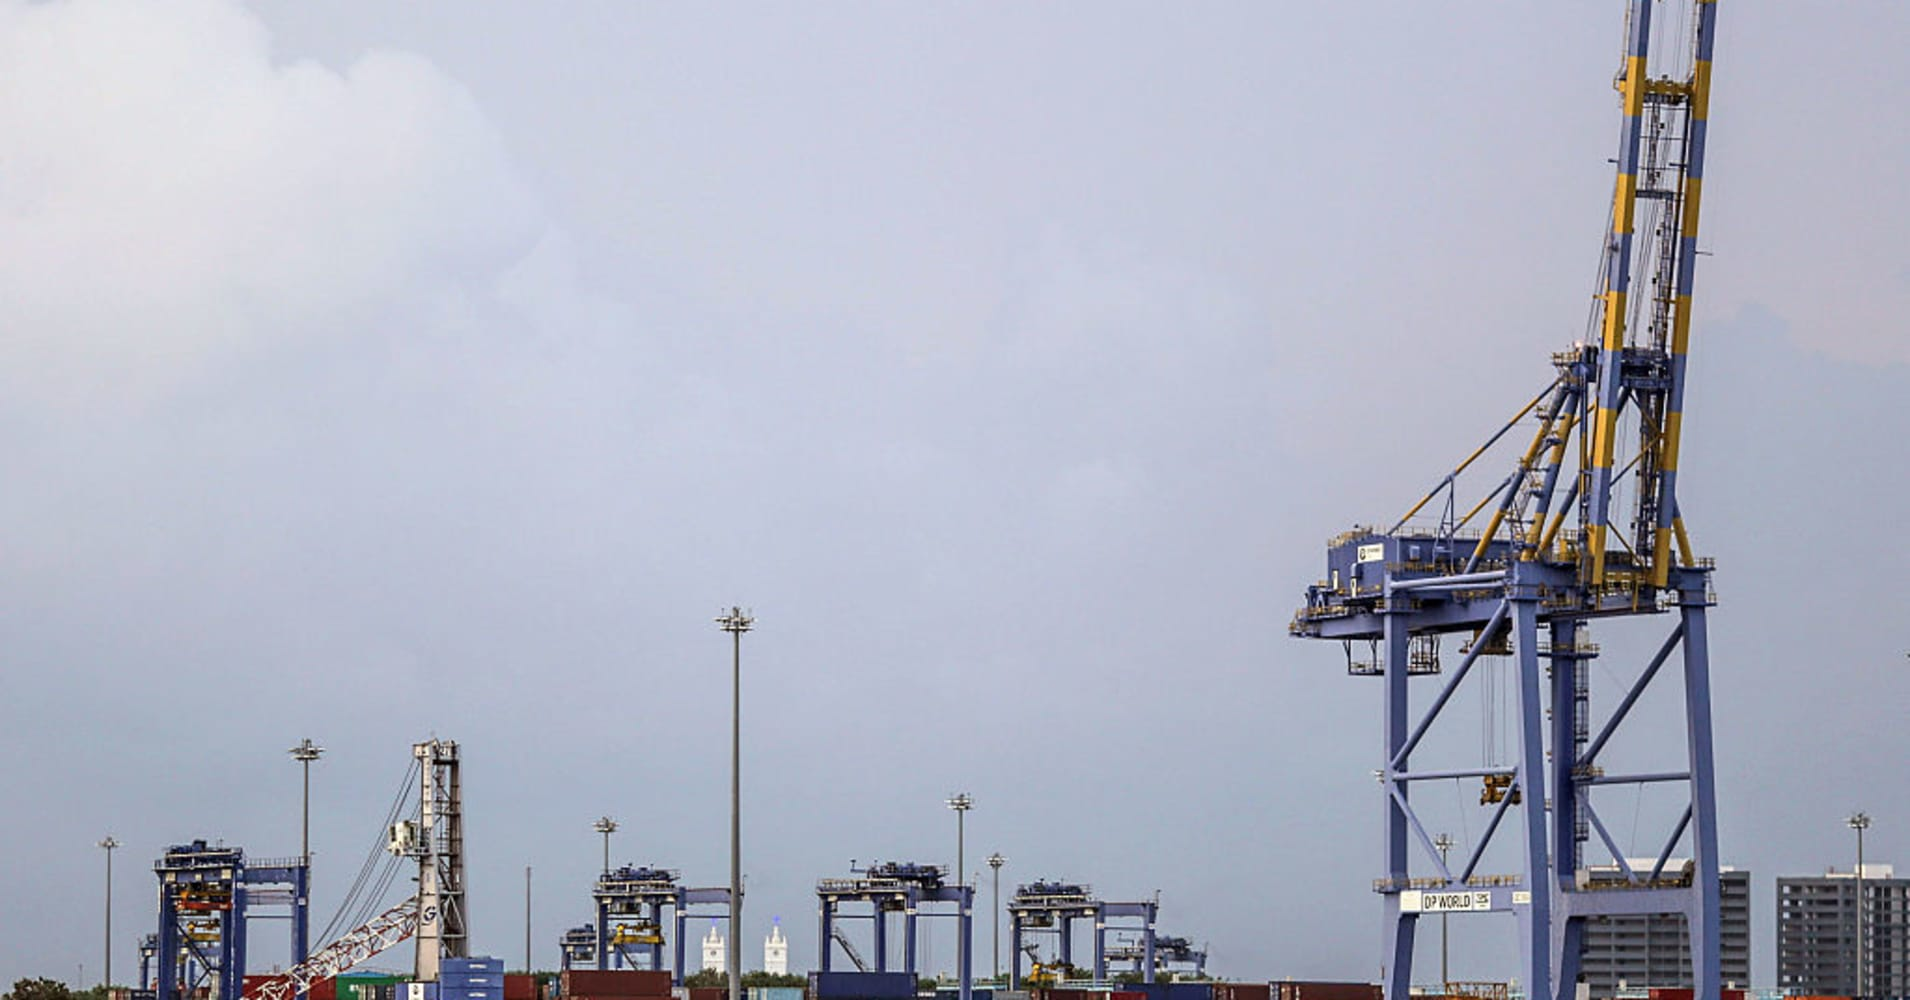 Dubai-based port operator DP World has its sights set on building out India's logistics network